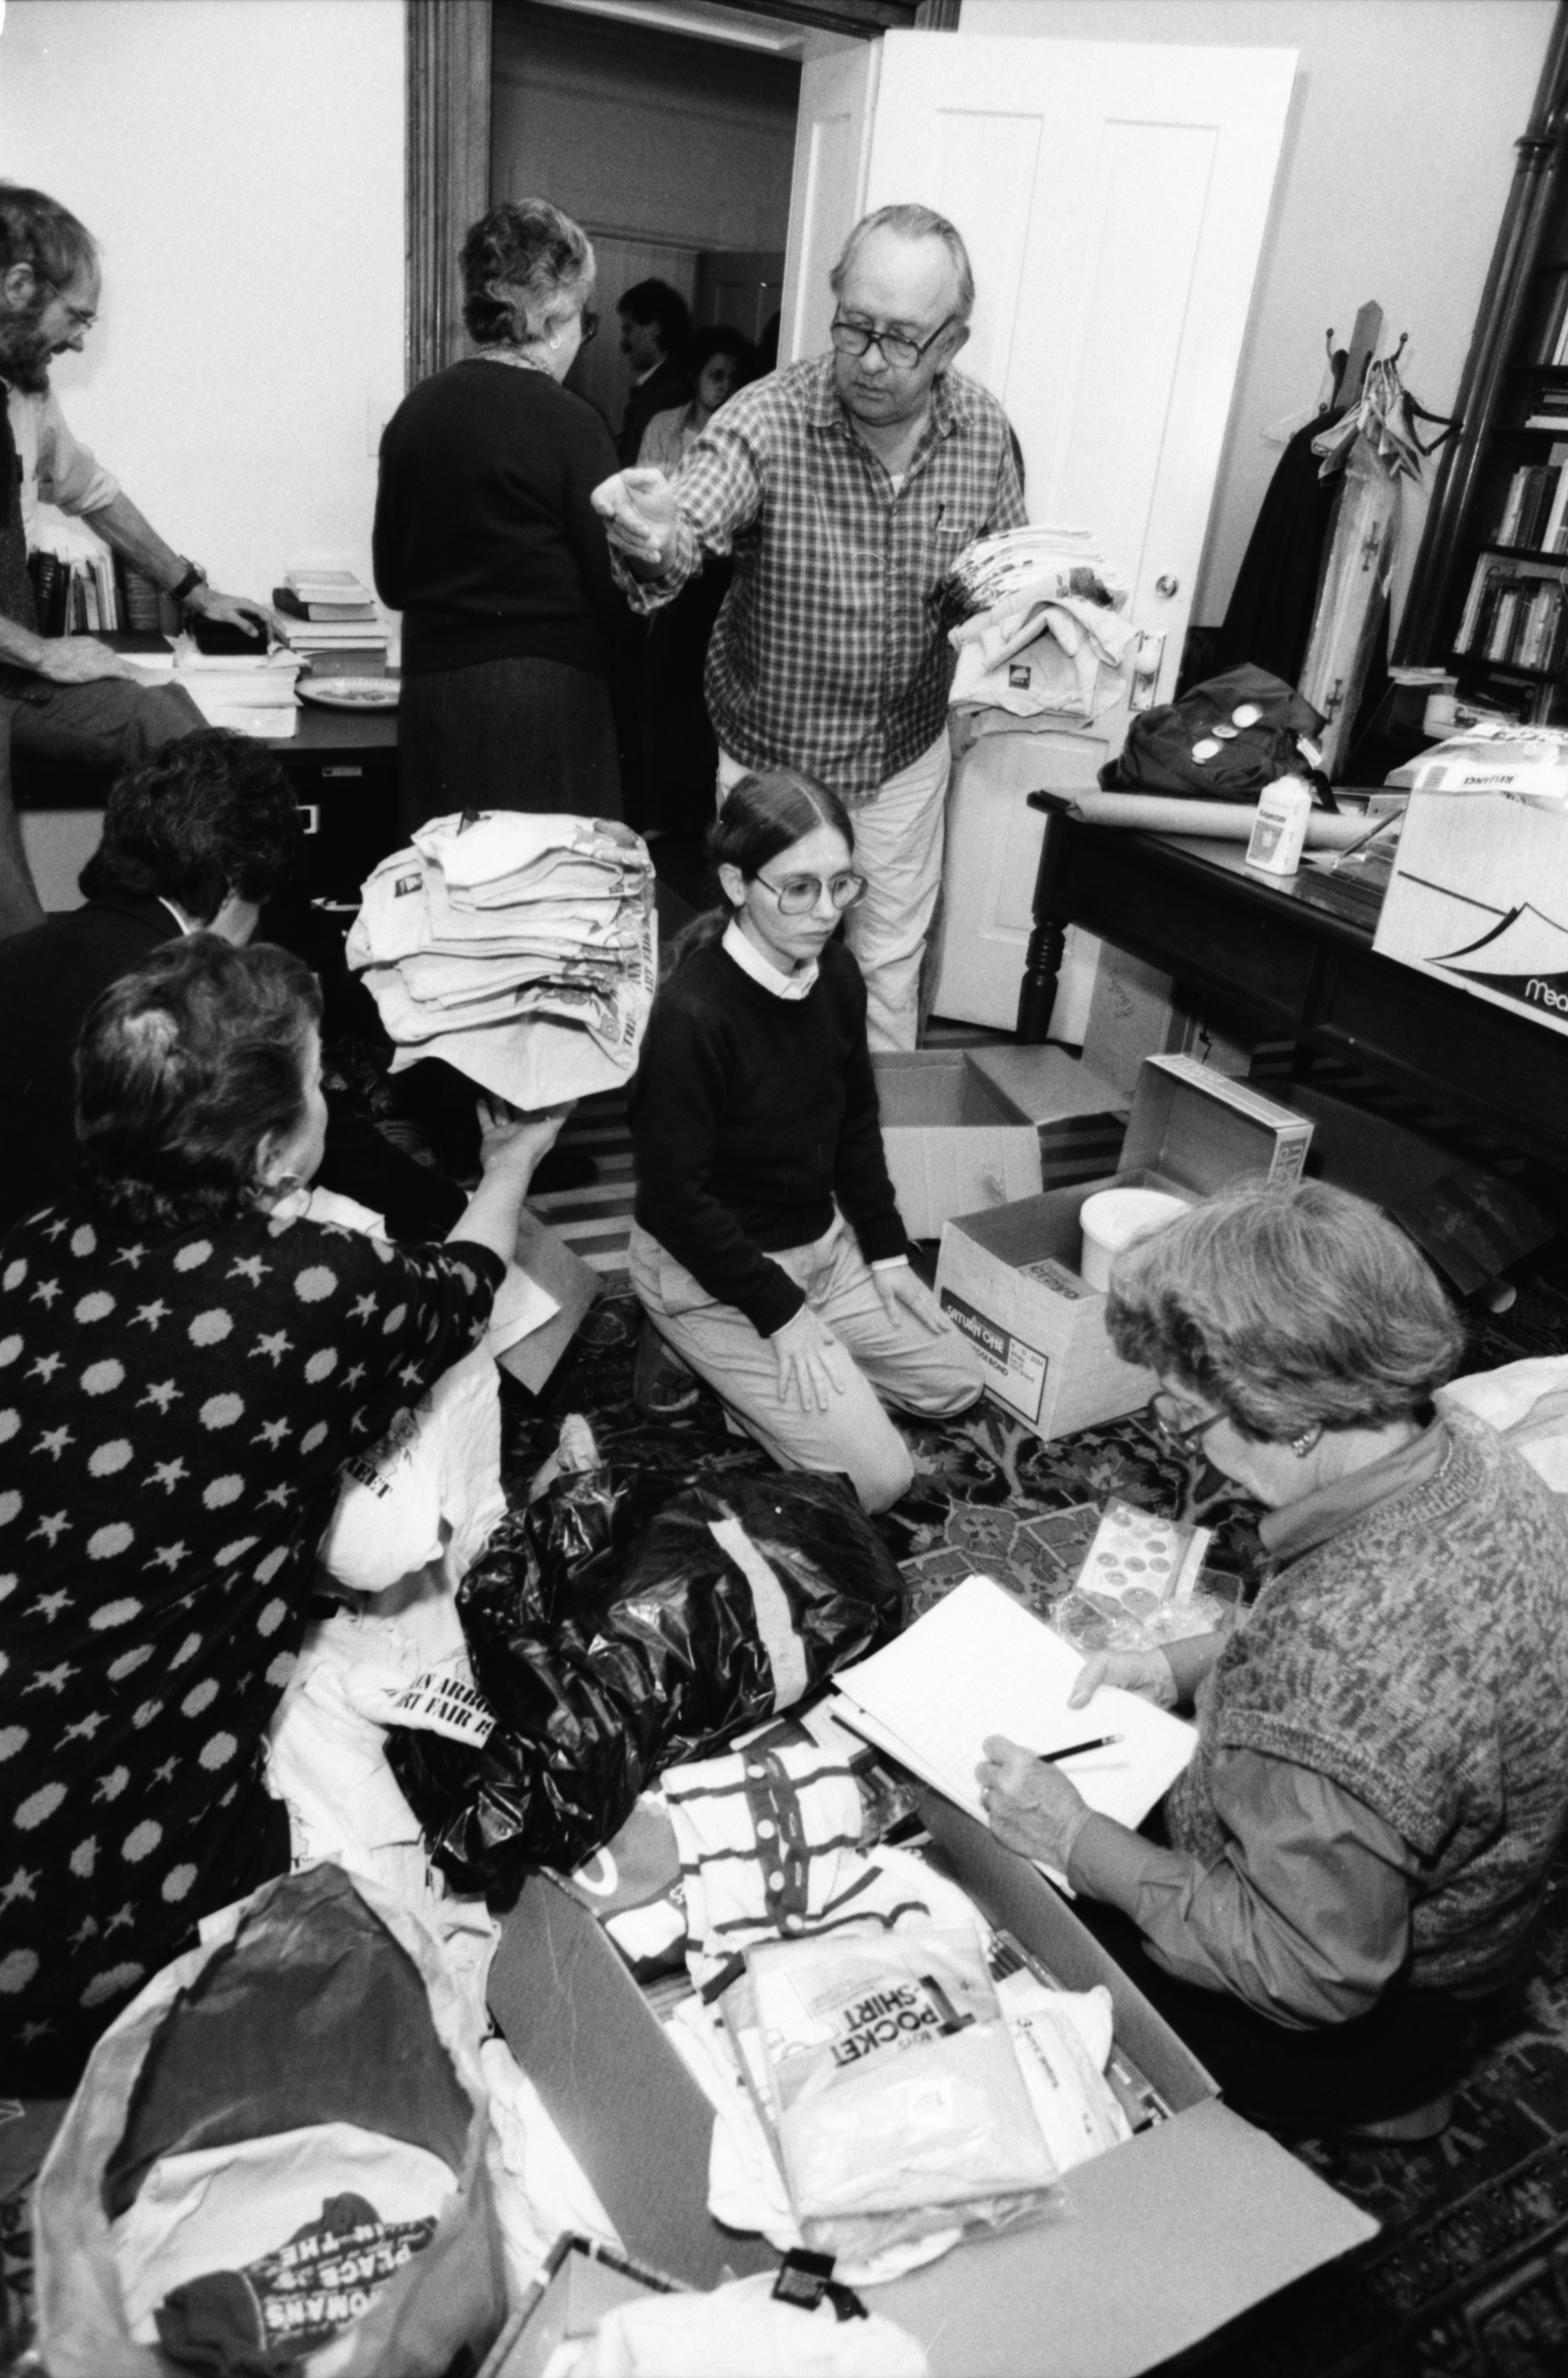 Wrapping Gifts for Nicaragua, October 1986 image